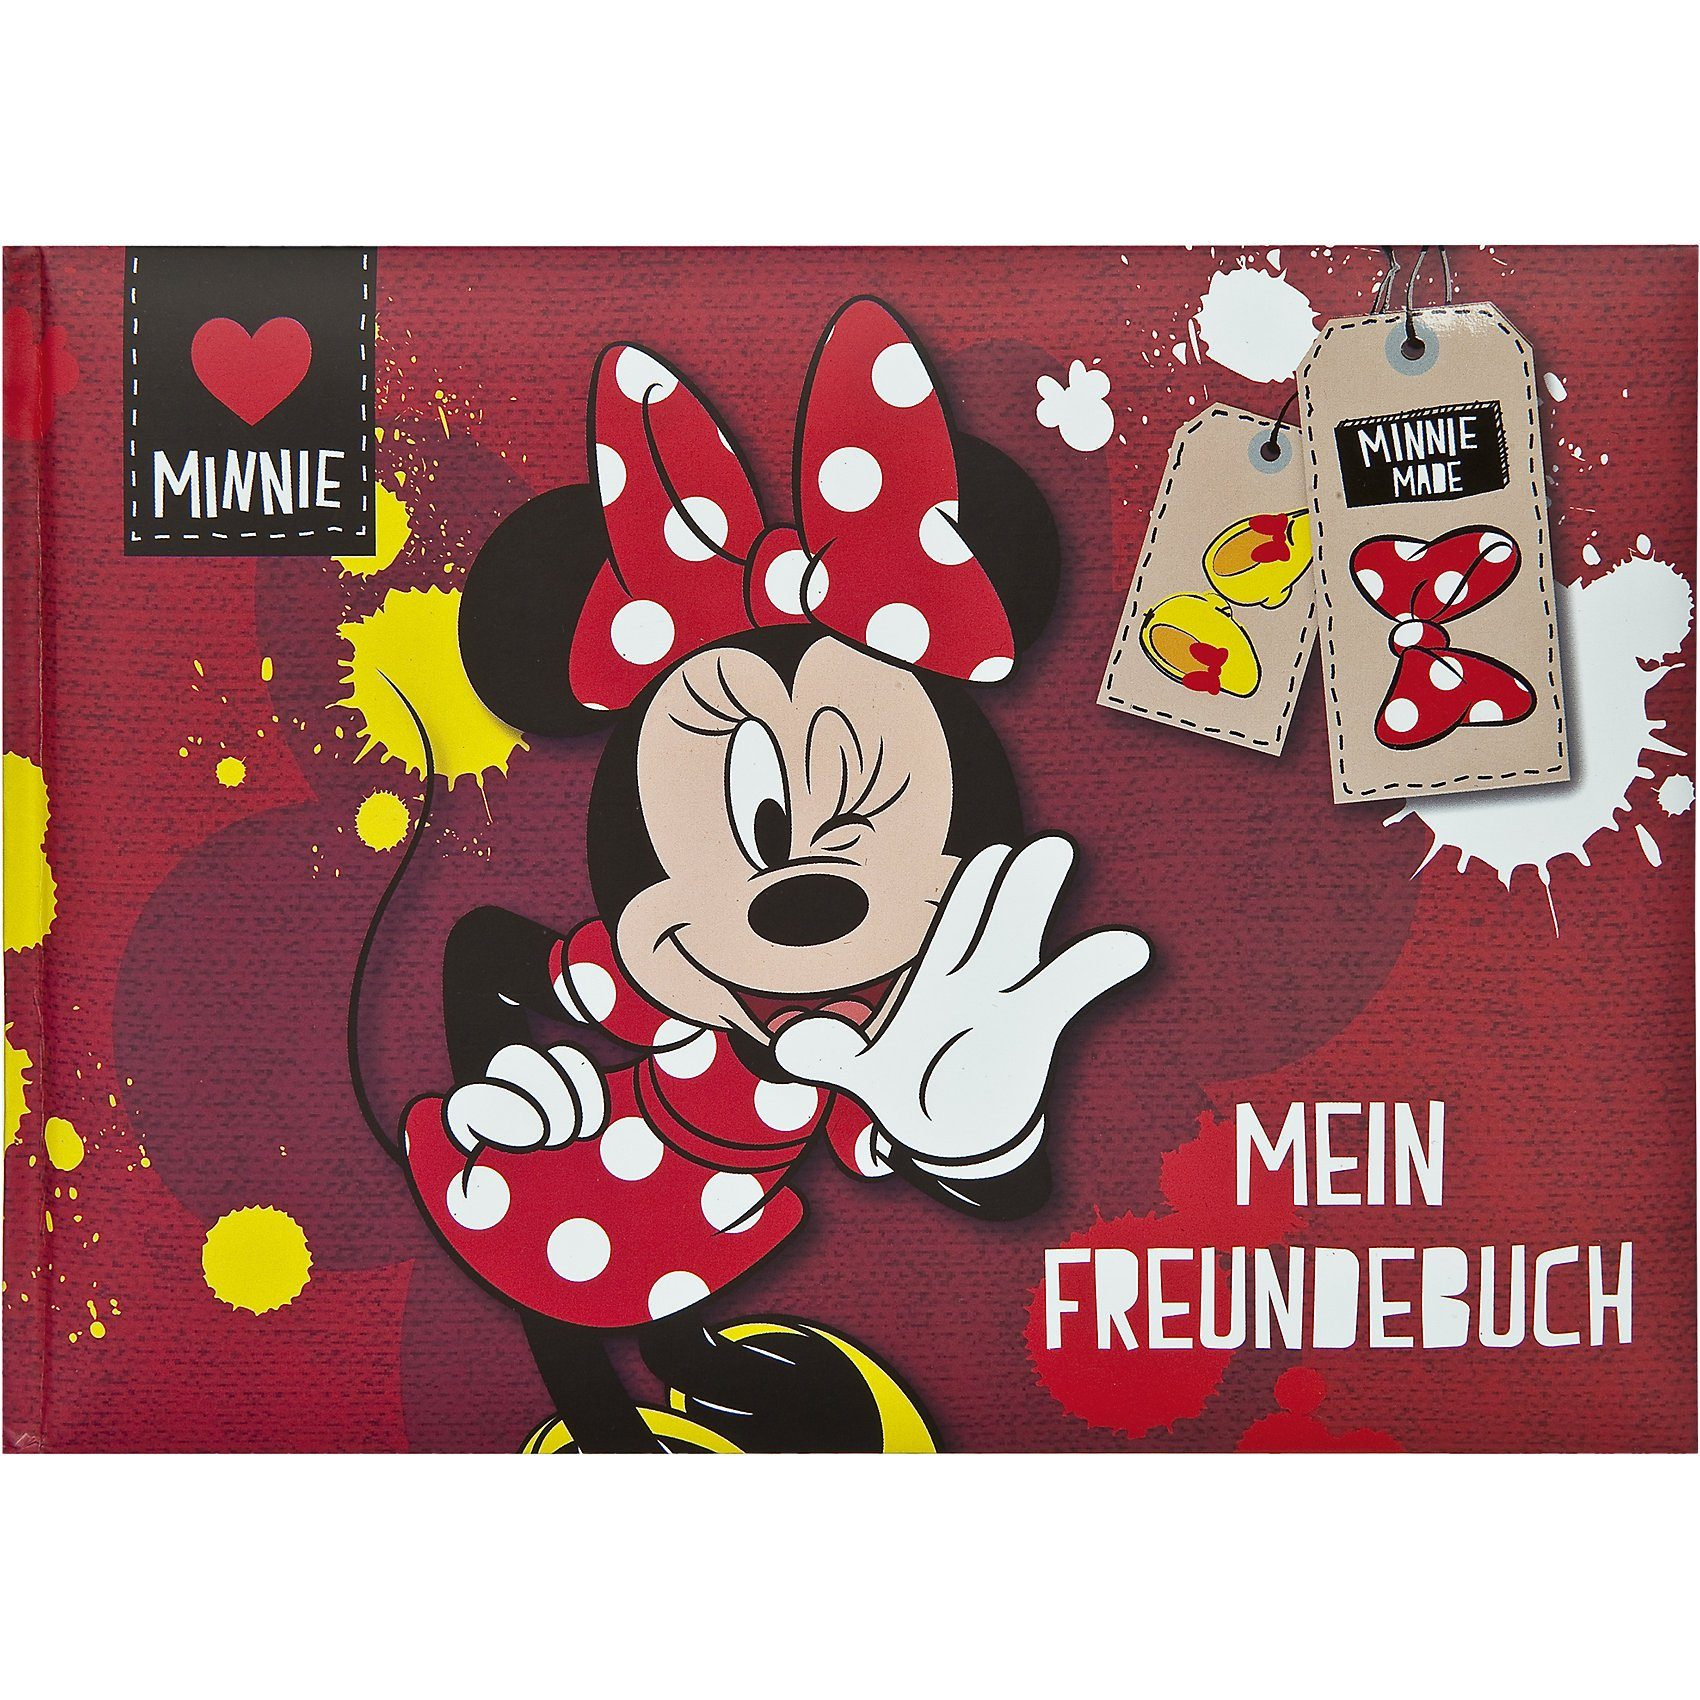 UNDERCOVER Freundebuch A5 Minnie Mouse